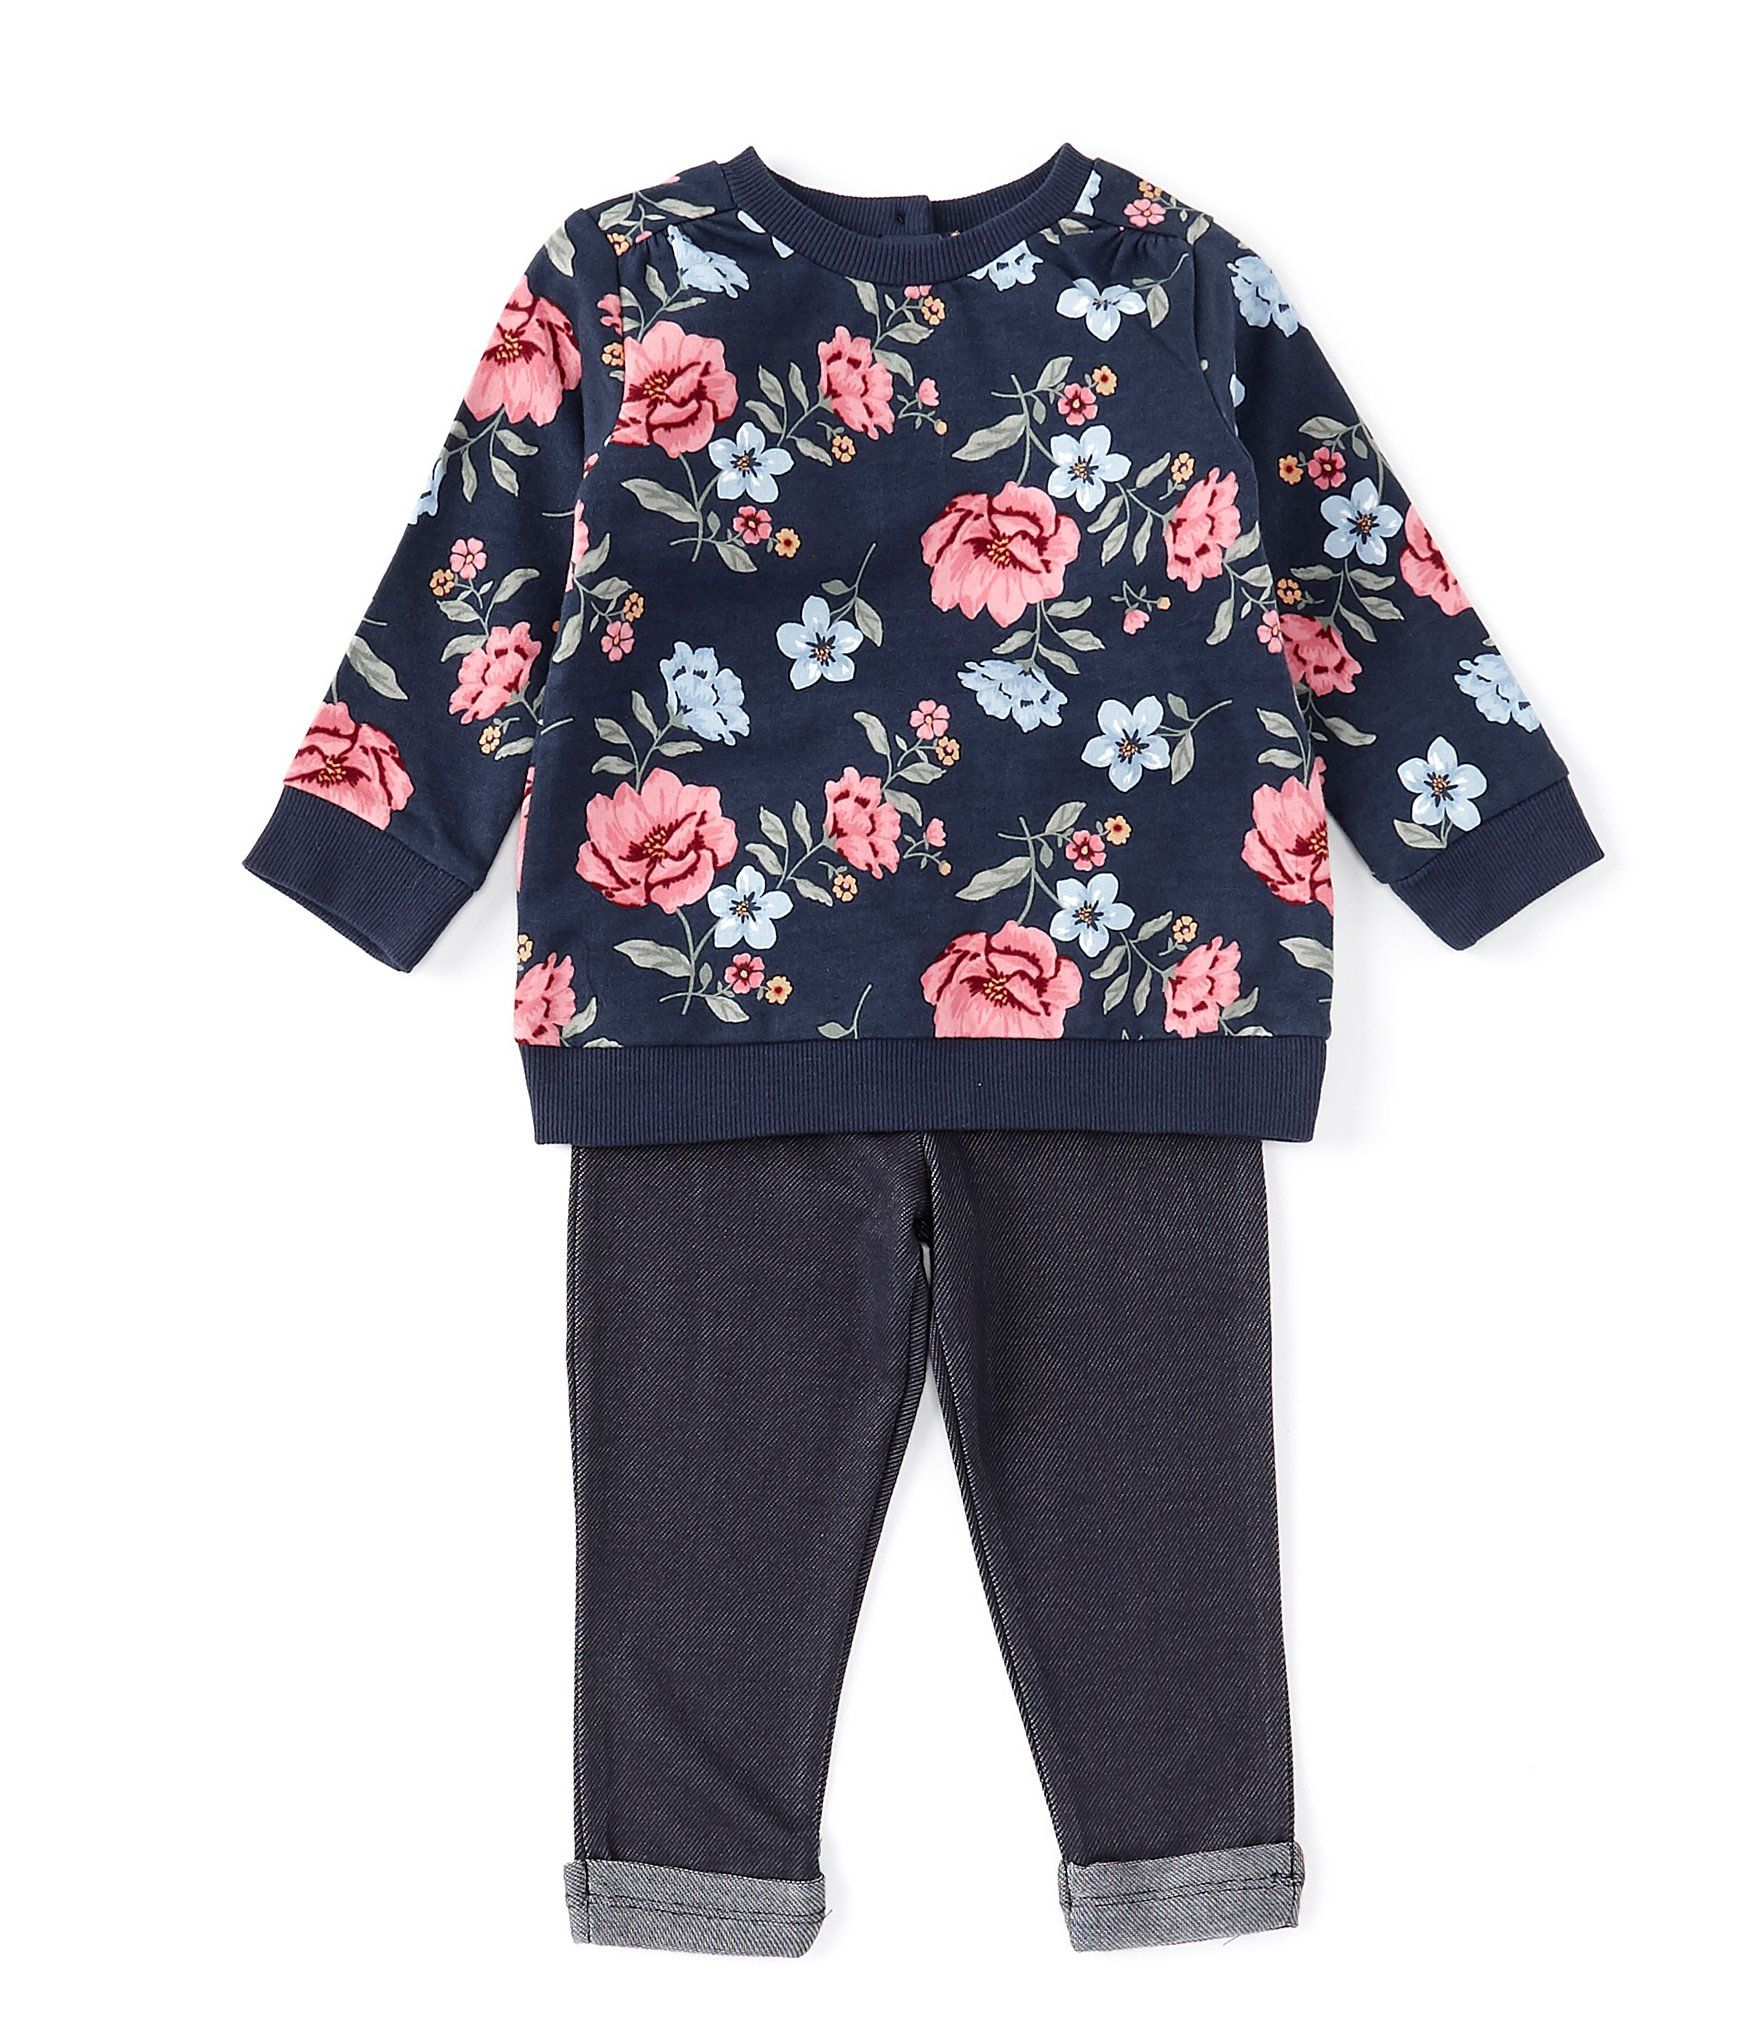 Photo of Little Me Baby Girls 12-24 Months Floral-Printed Sweatshirt & Knit Denim Leggings | Dillard's